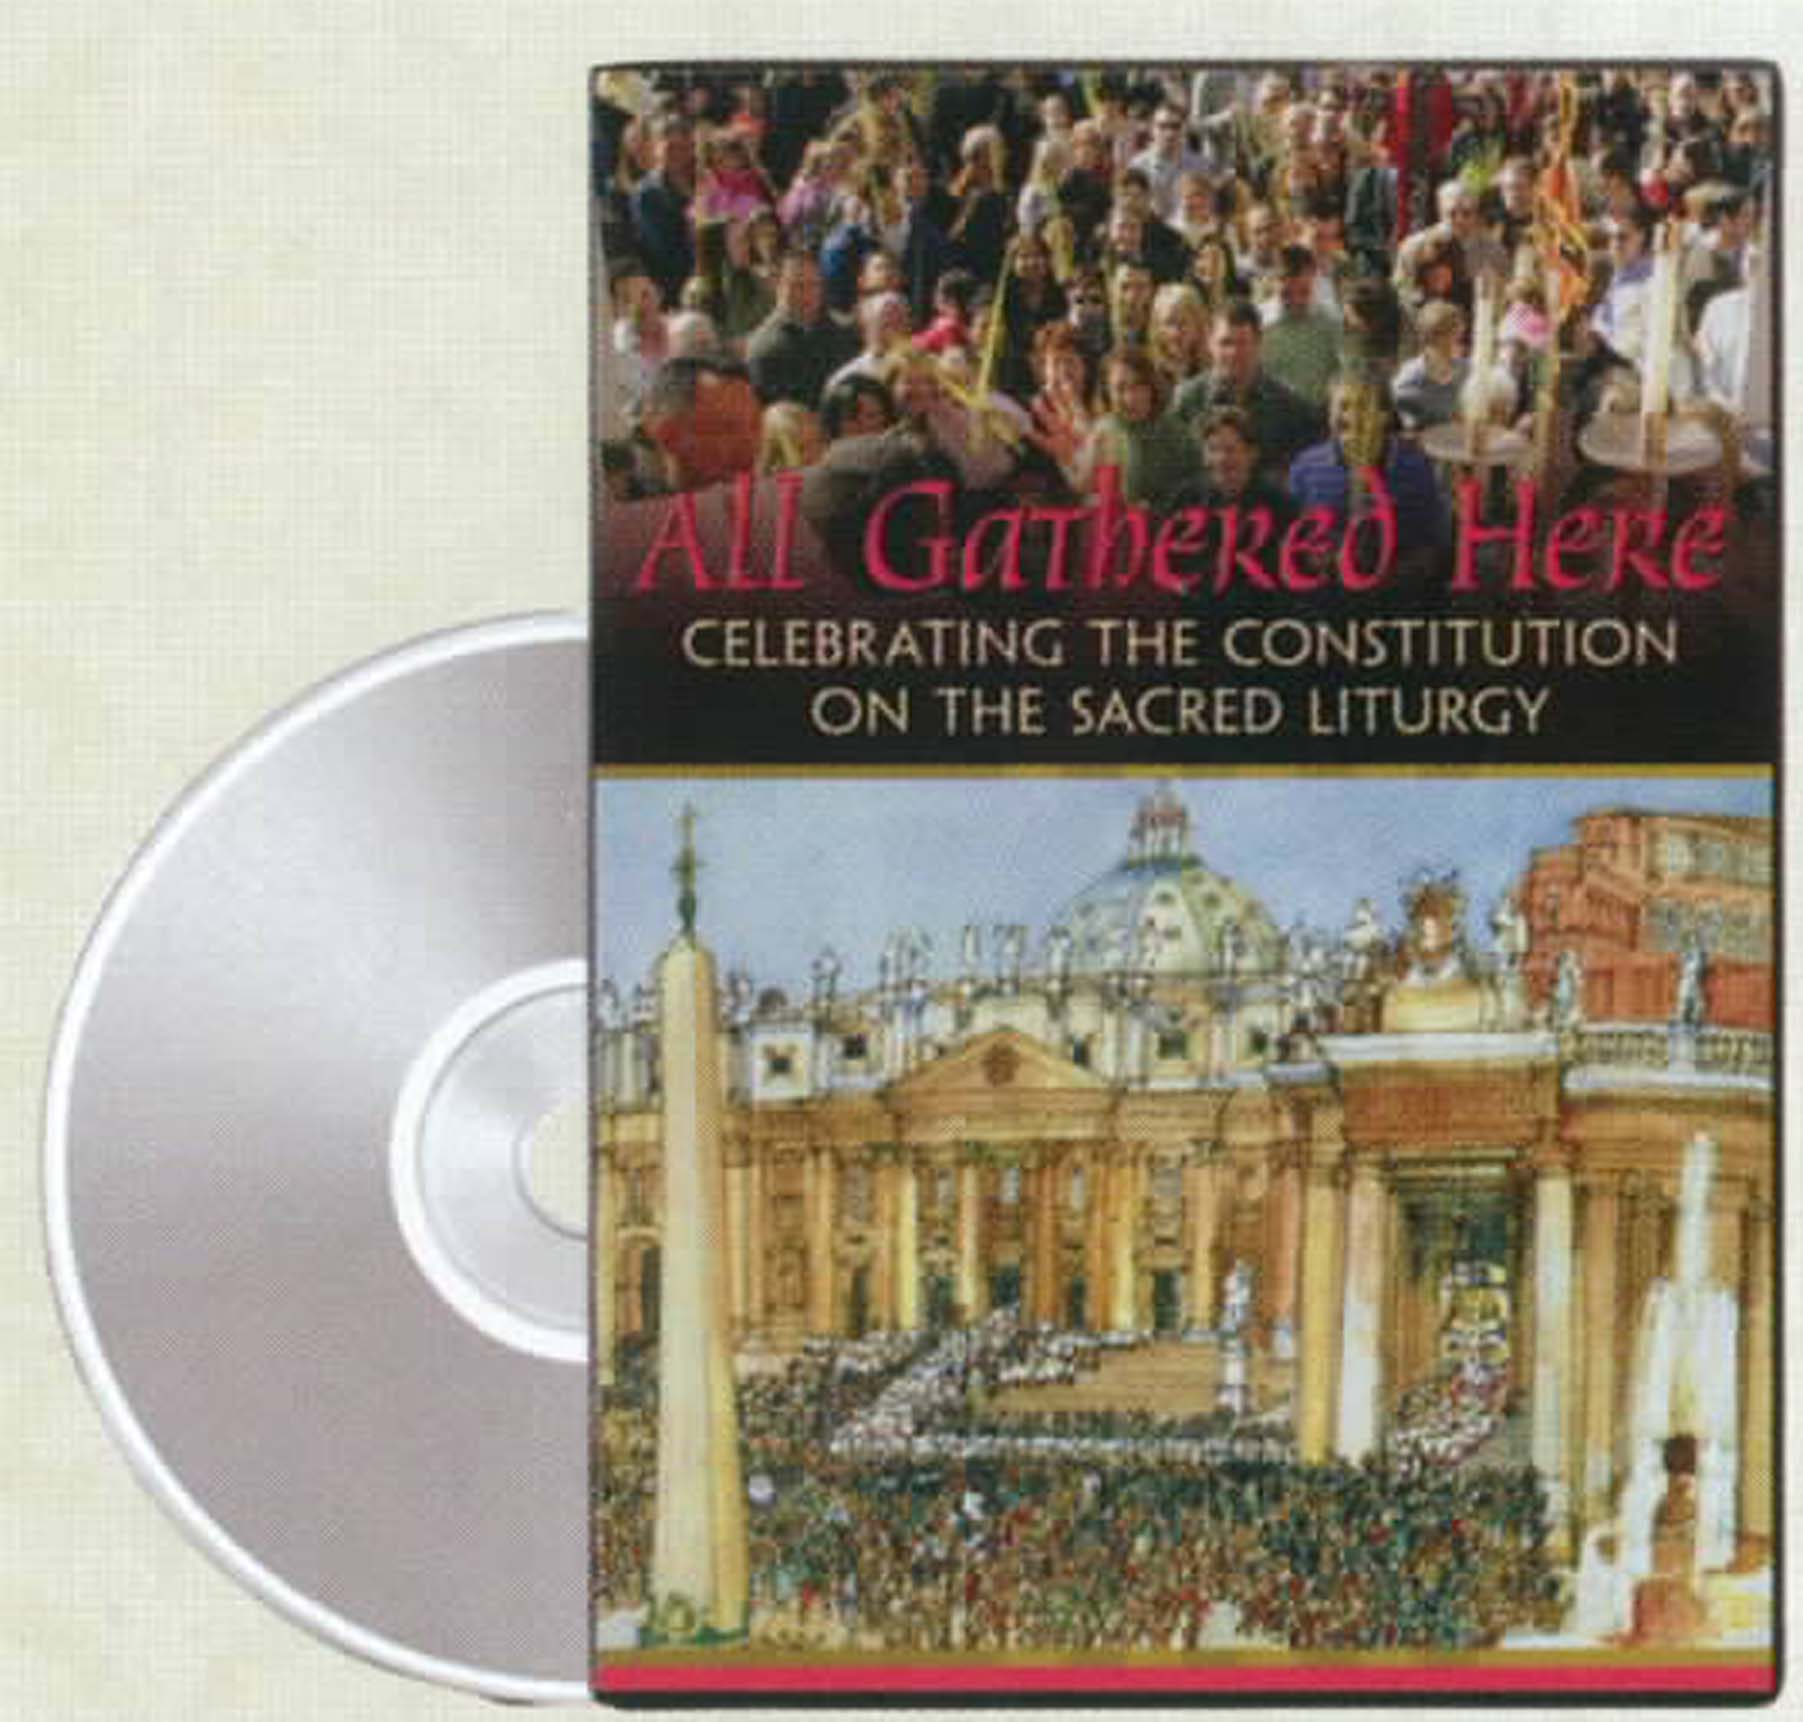 All Gathered Here DVD from LiturgyTraining Publications 120-9781616711771